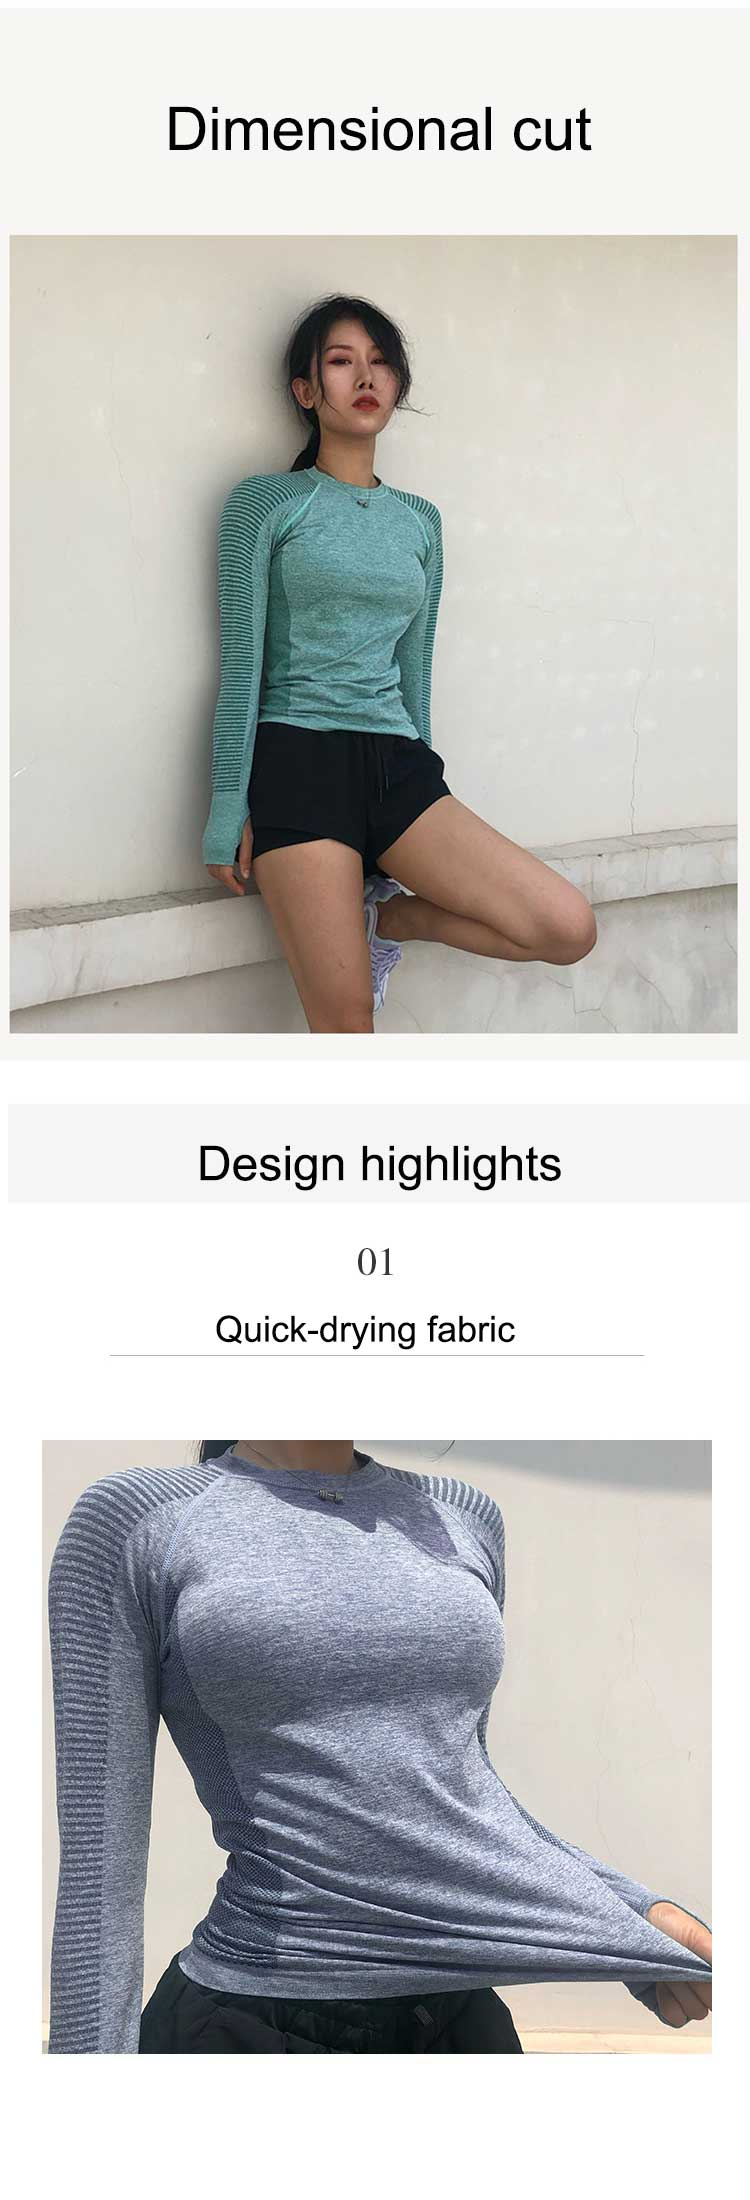 lightweight-fabric,-whether-it-is-daily-out-of-the-street-or-sports-fitness-can-be-worn